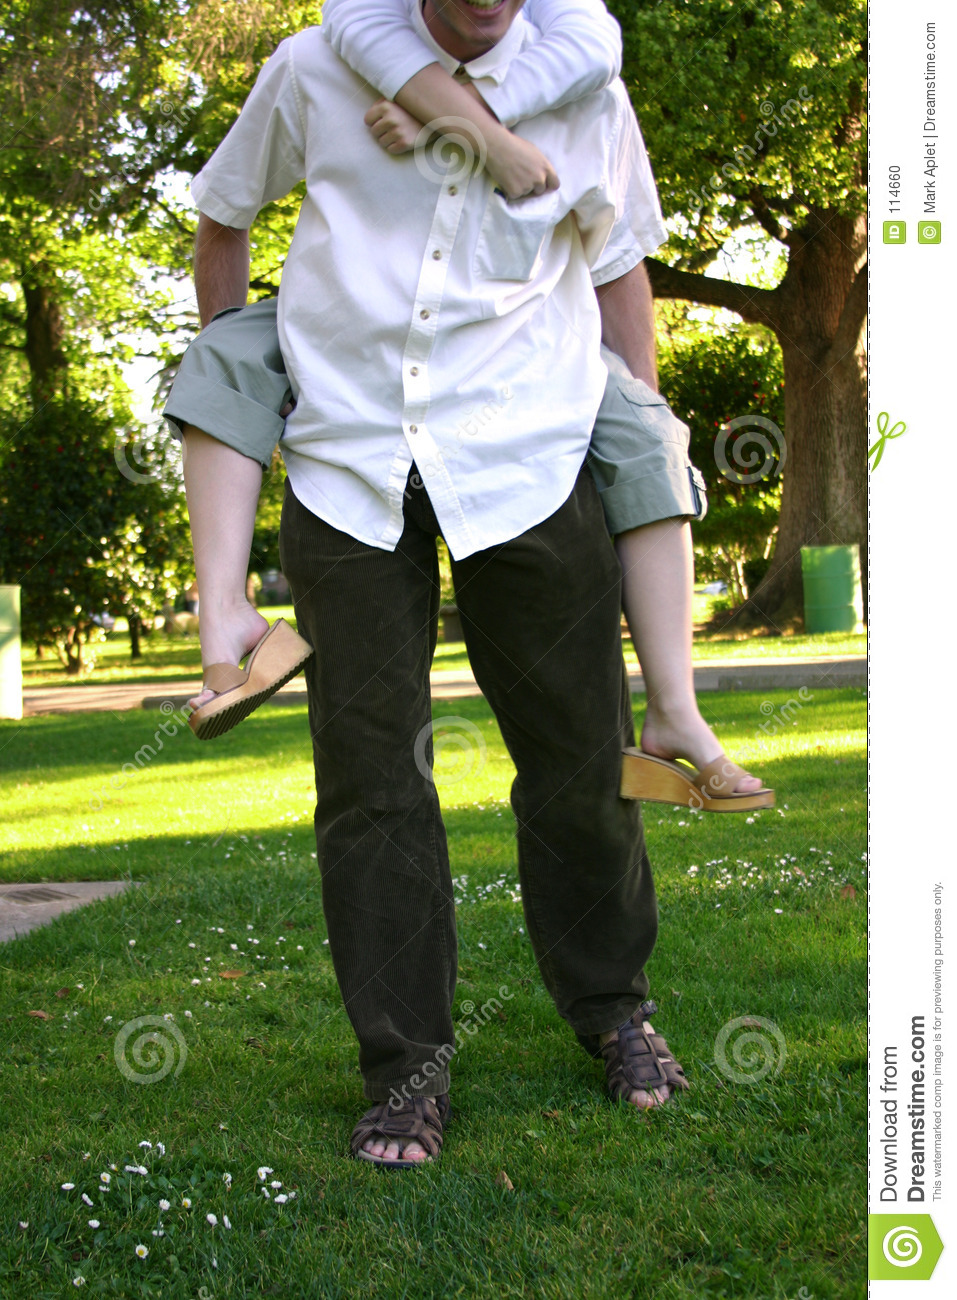 Download Piggy-back ride stock photo. Image of embraced, adoring - 114660